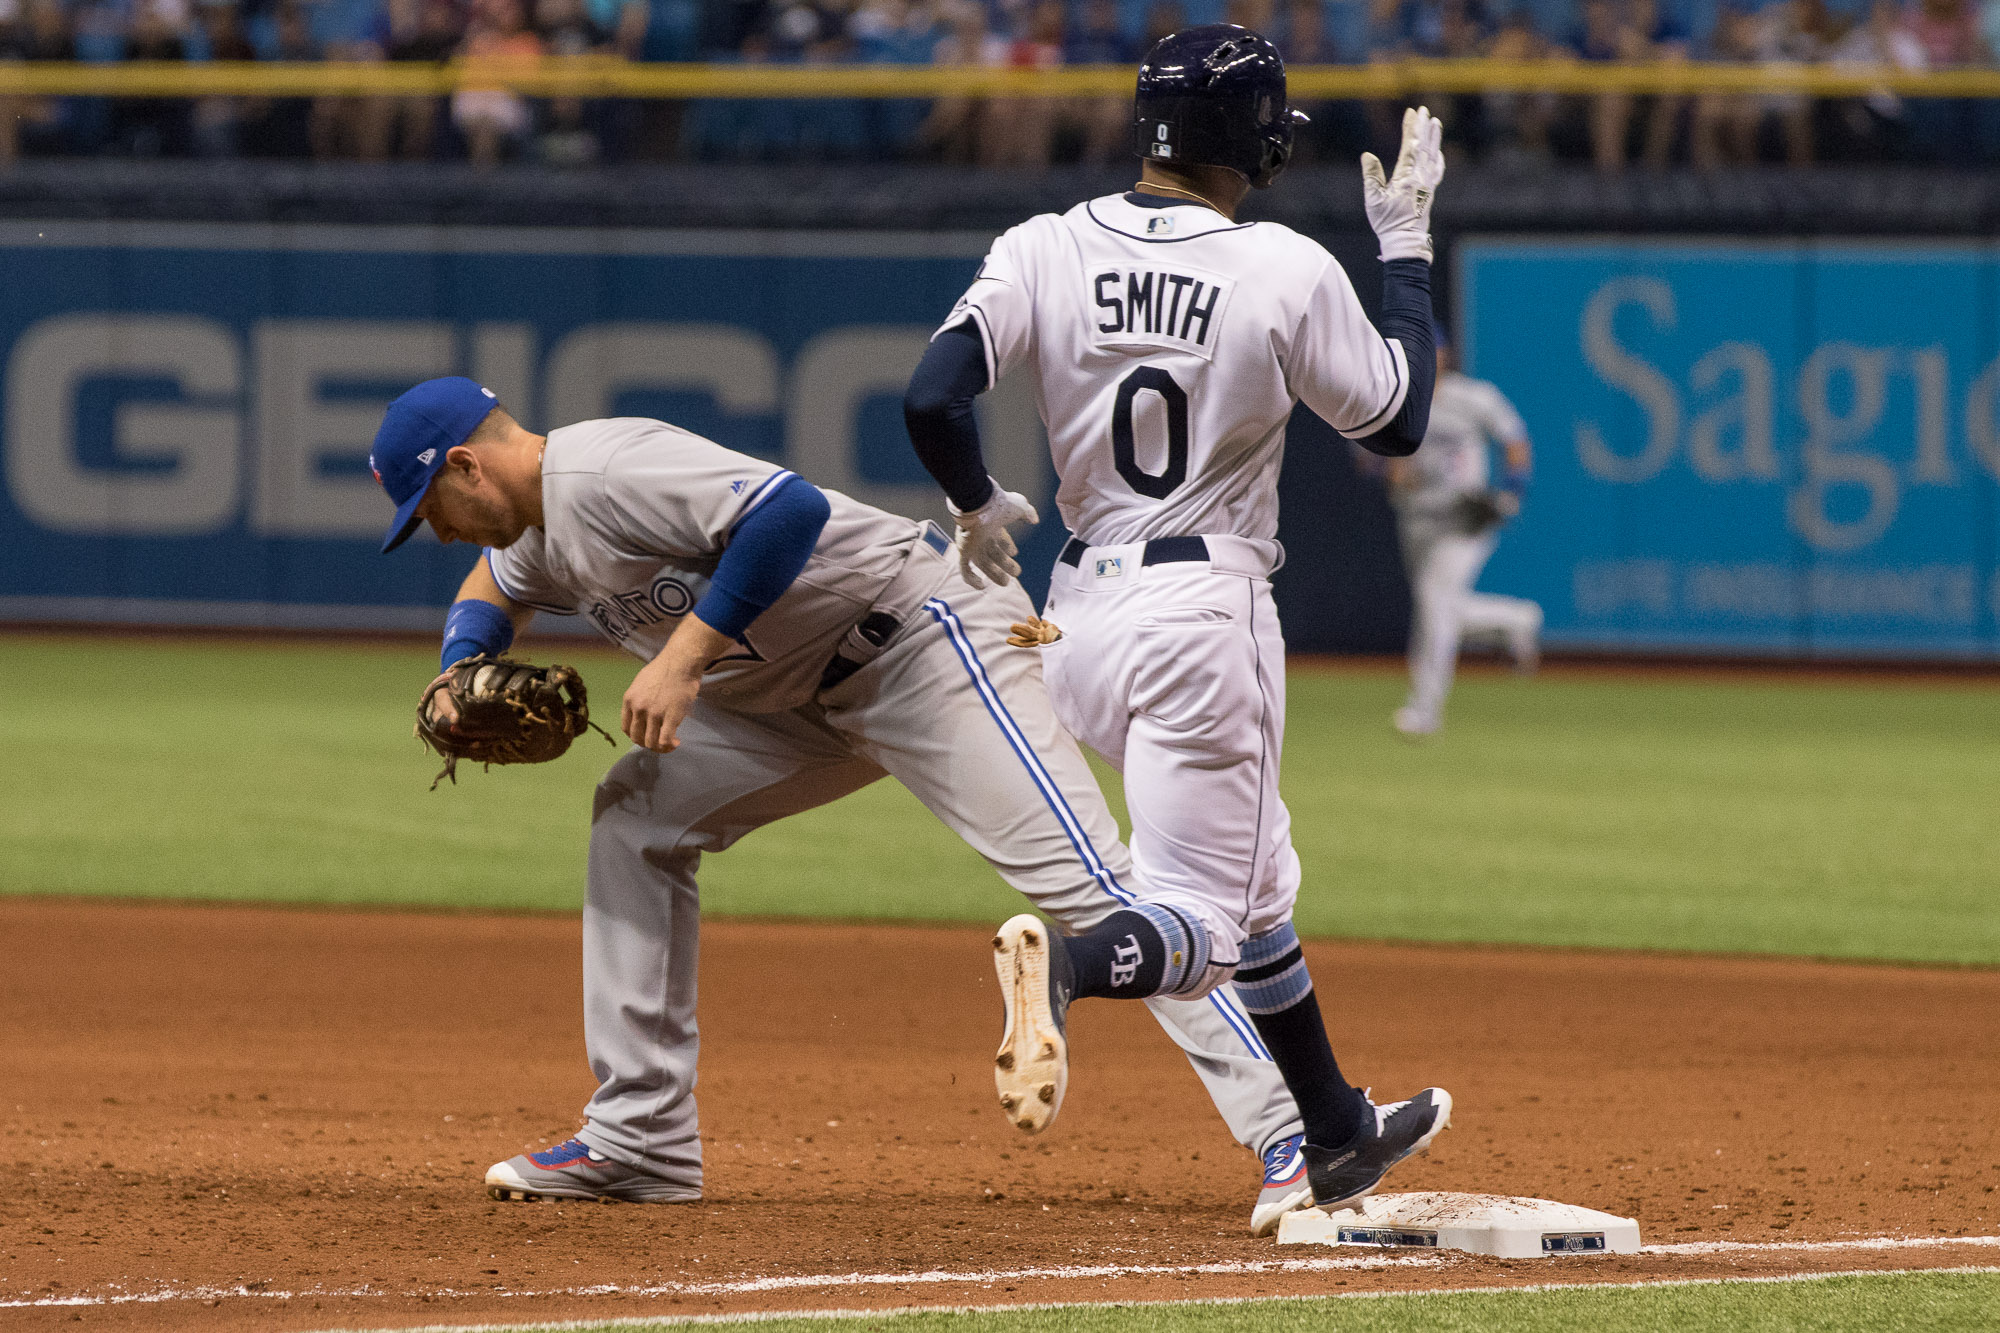 Smith is barely beaten to first on a groundout./Steven Muncie